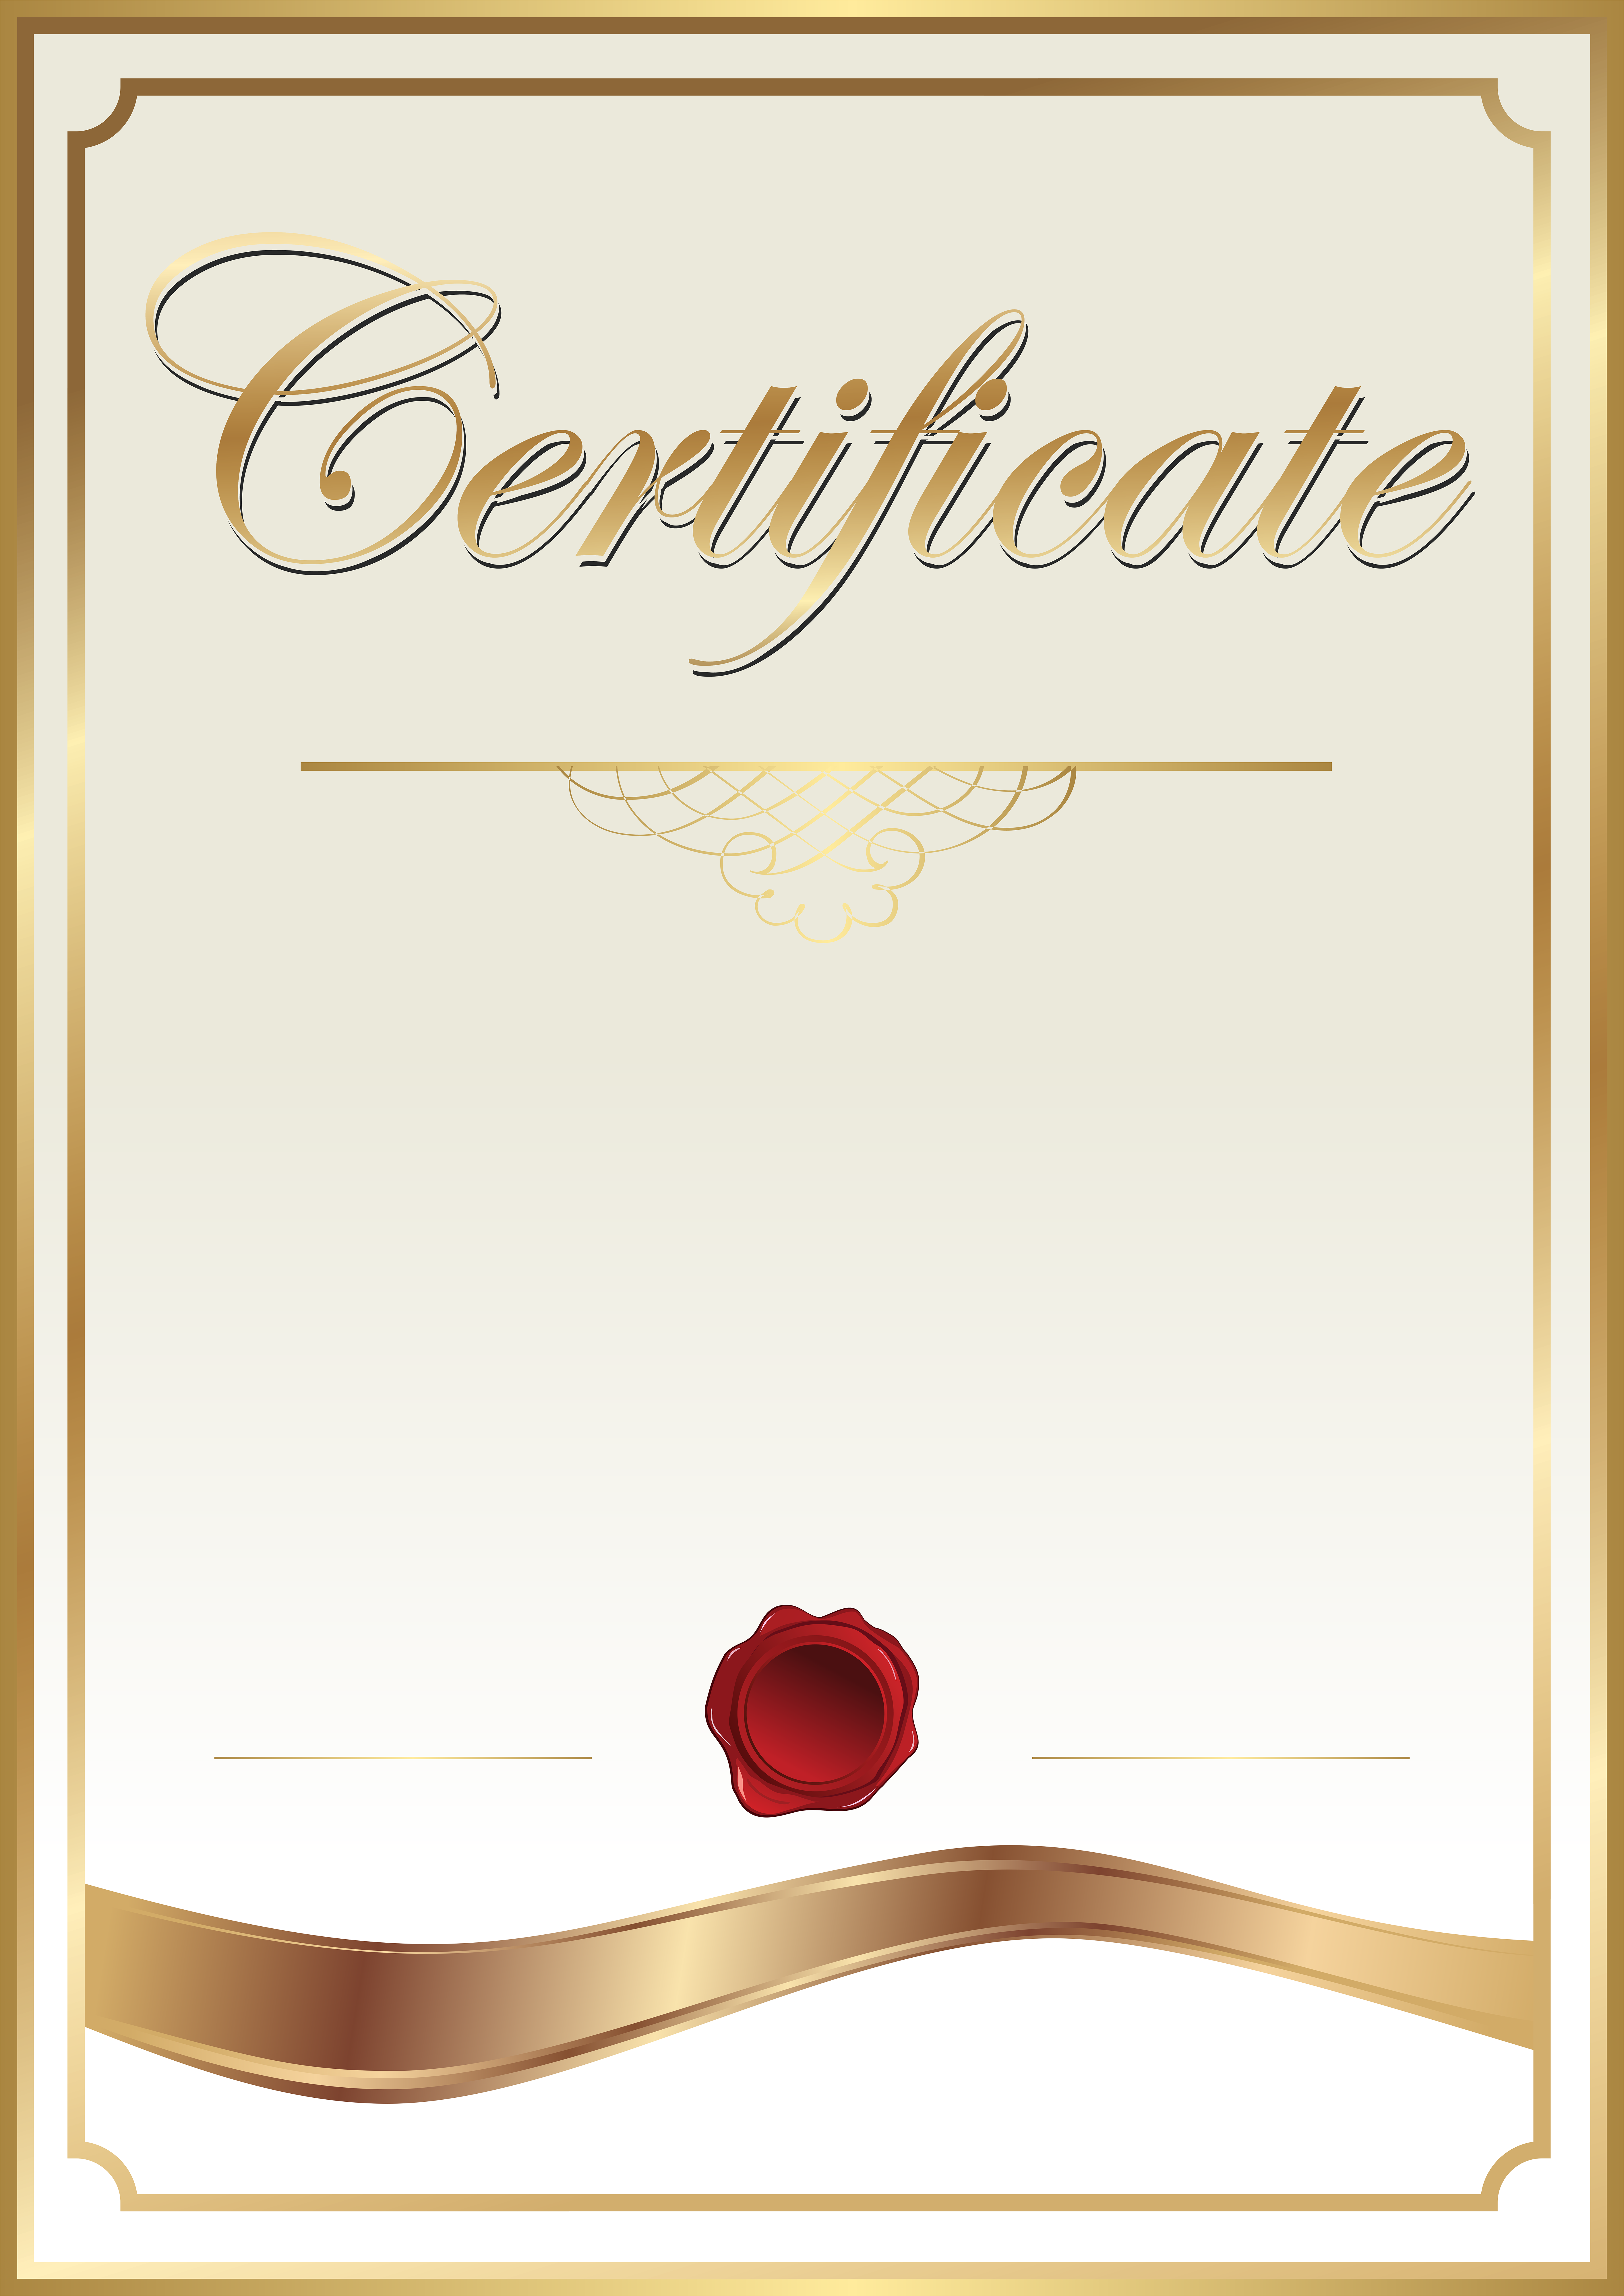 Templates  clipart cert View PNG Gallery Template size